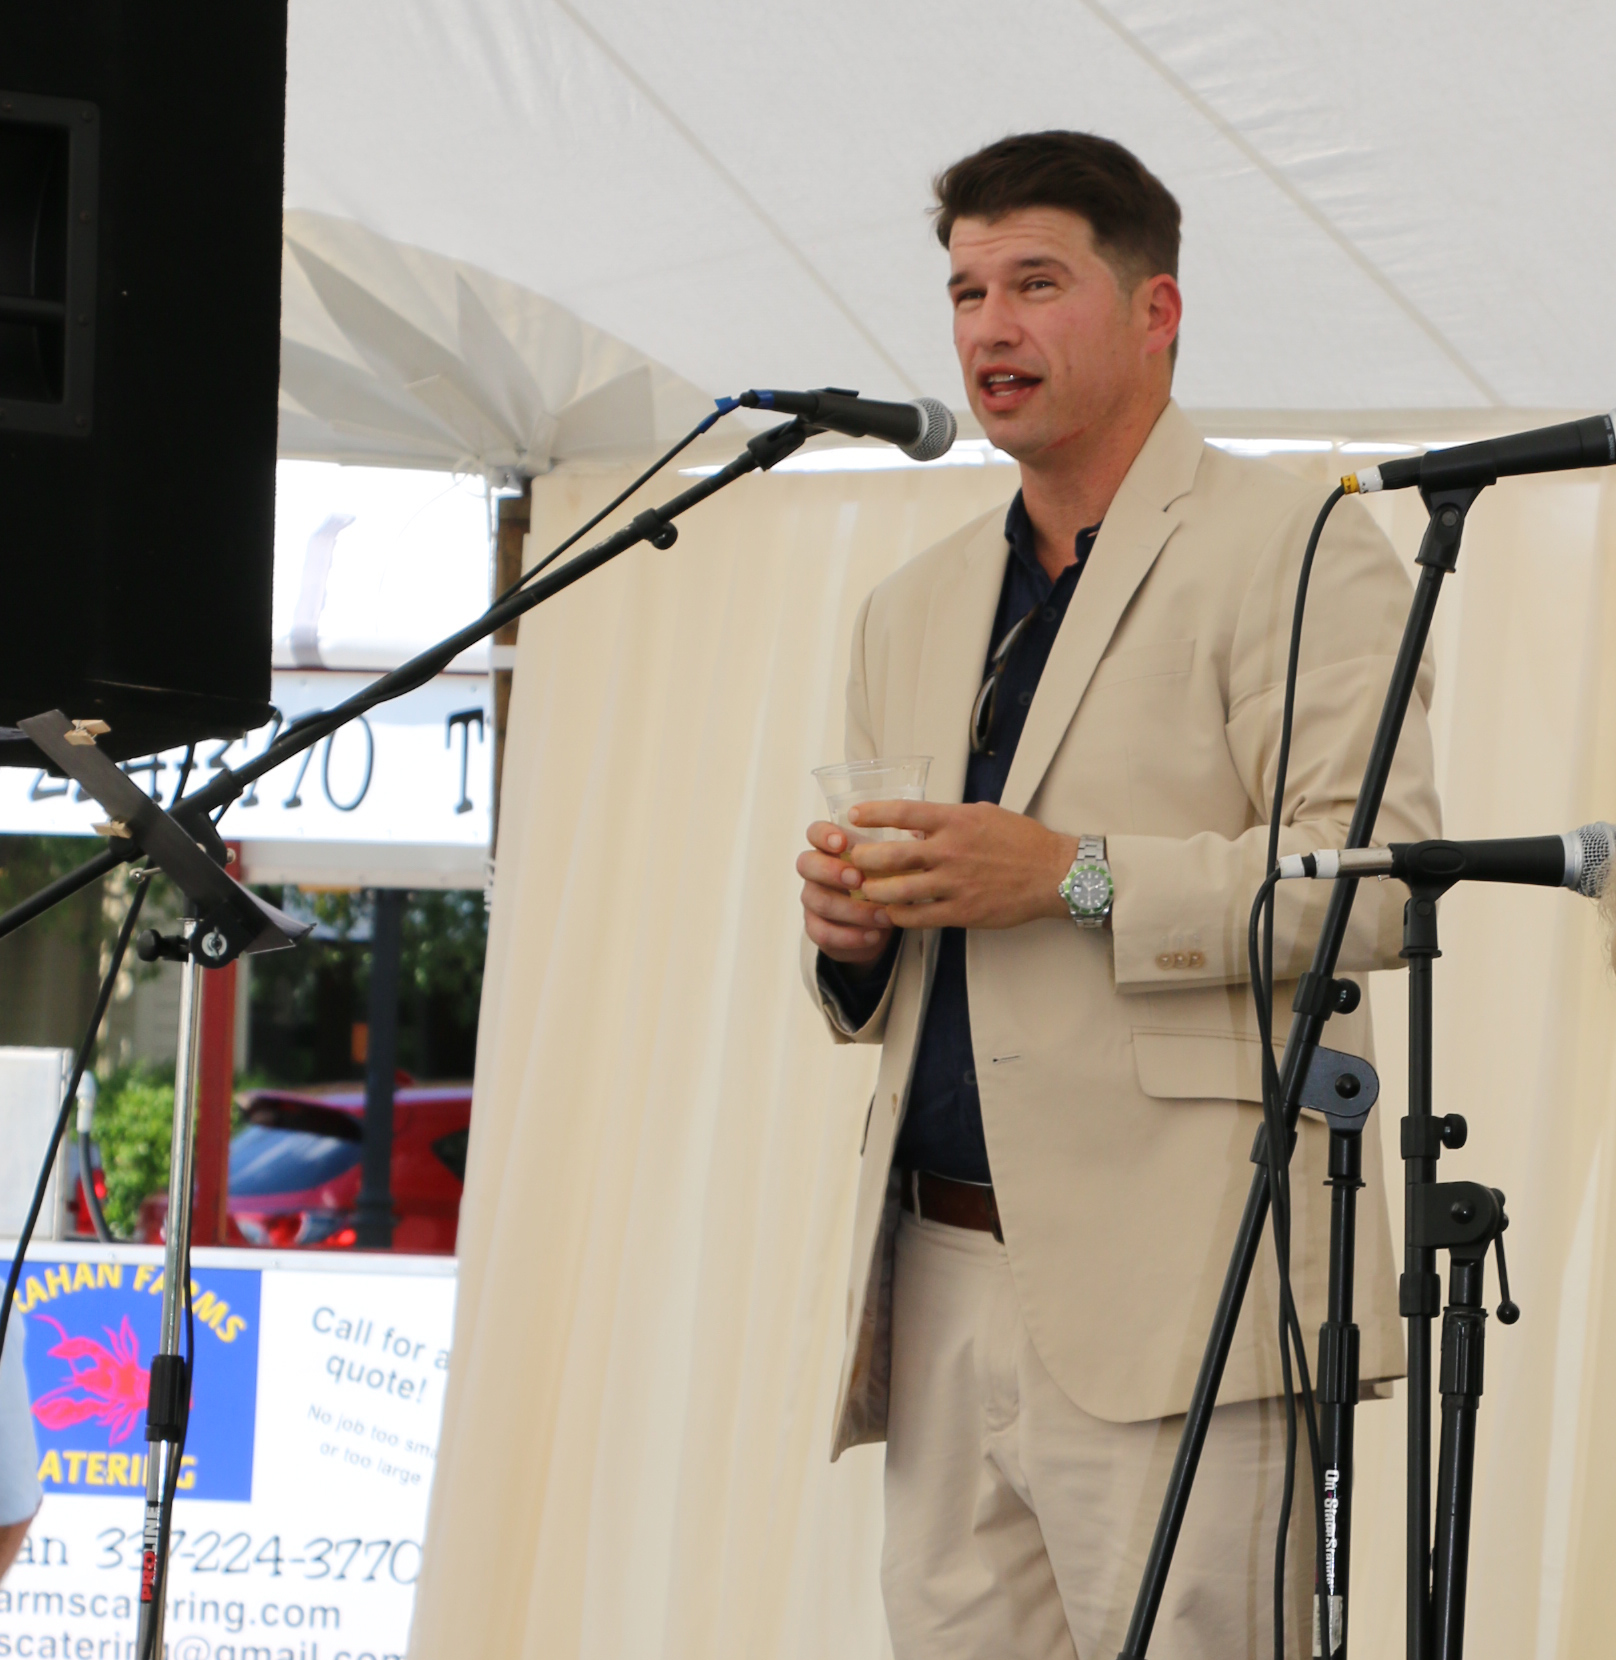 Phillip Manchester, a partner with S.L. Shaw & Associates – the company developing 297 Seven Farms Drive - addresses a crowd of commercial realtors, local business owners, and friends at a party held on site to announce and explain the project.